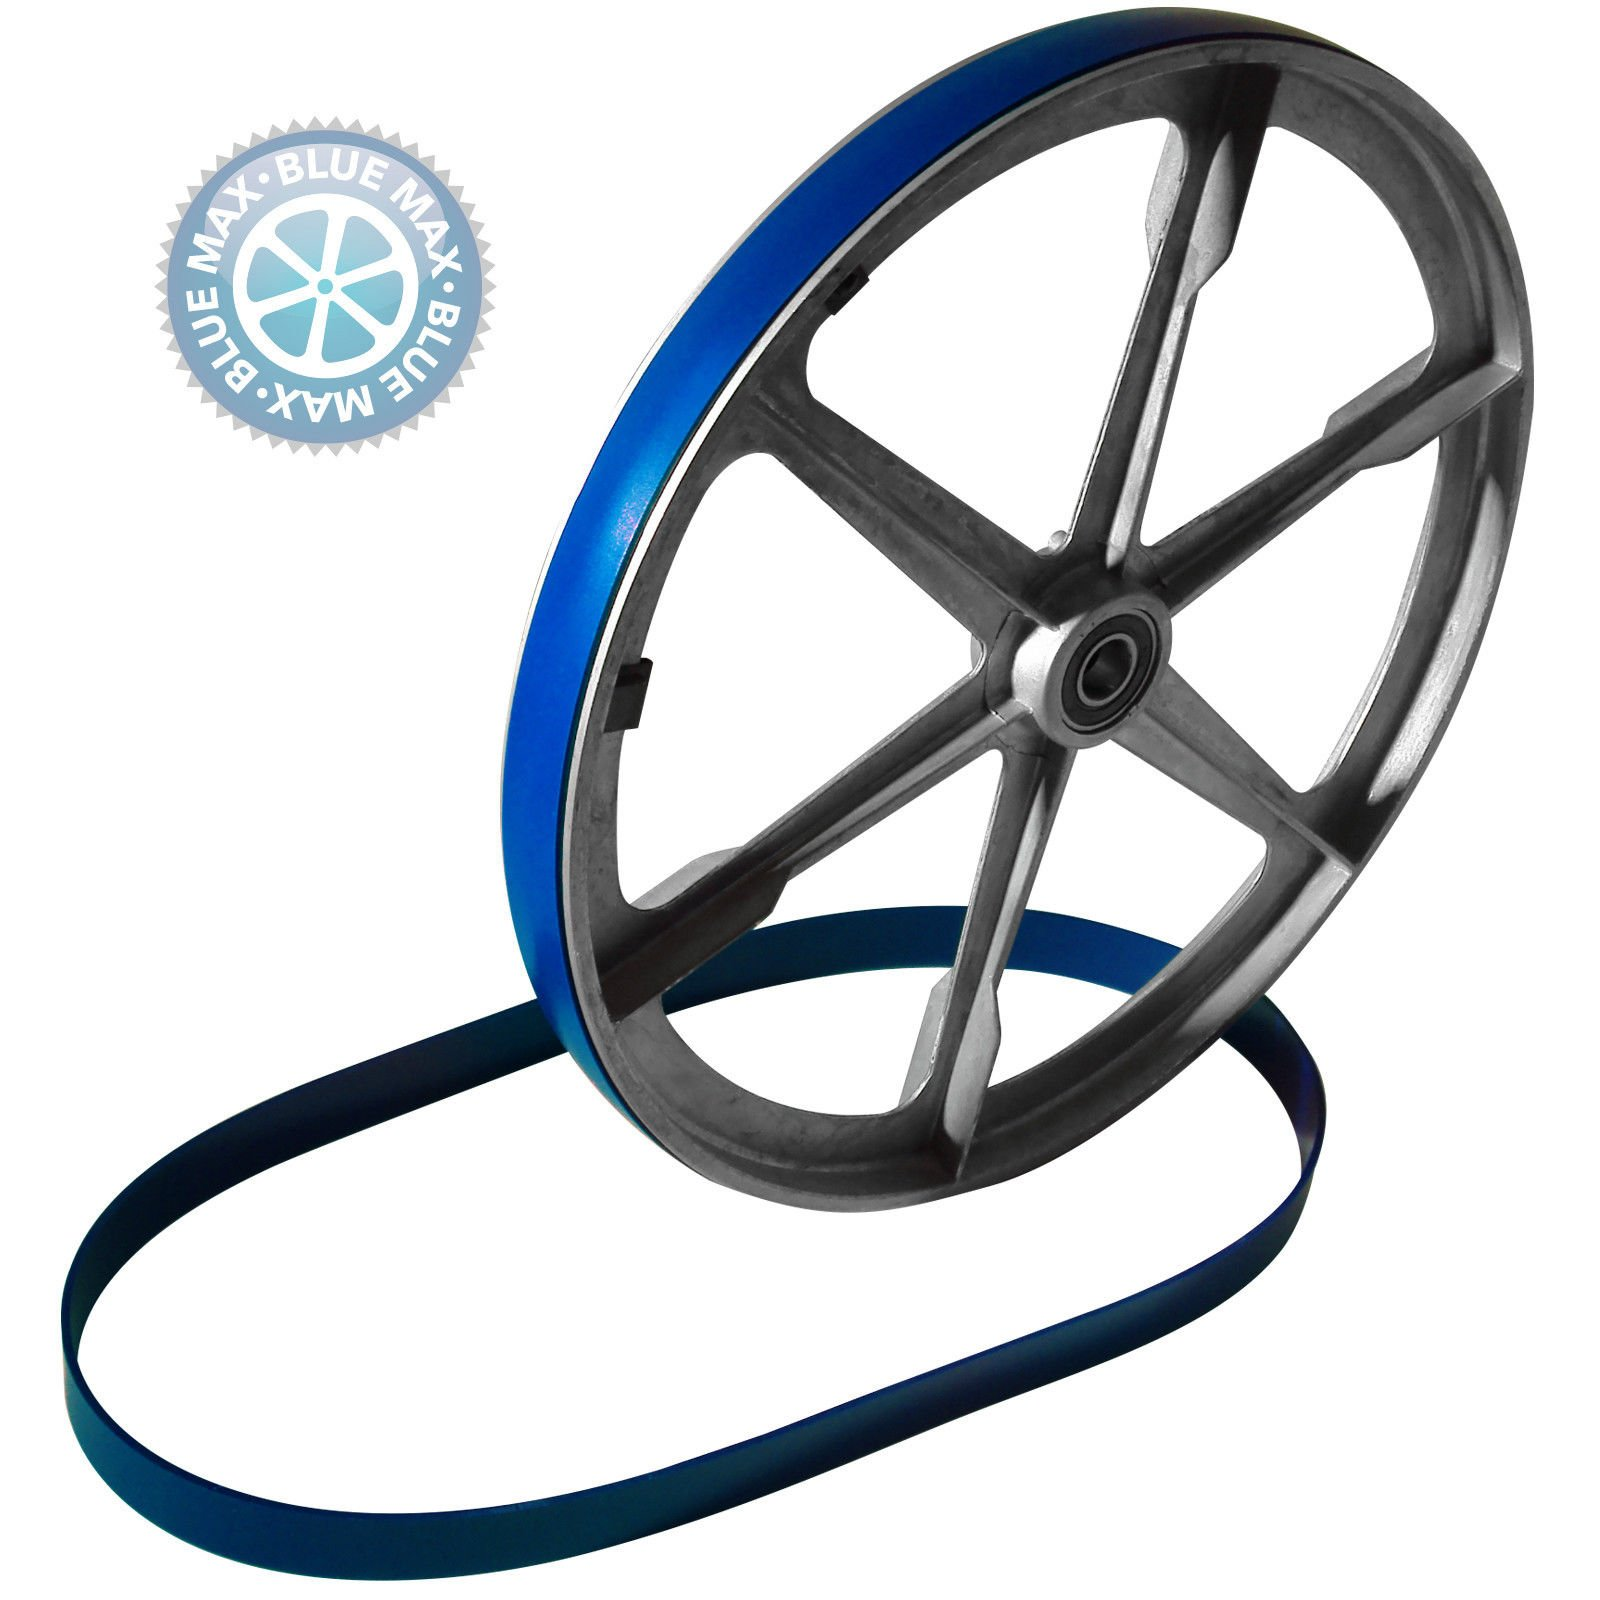 New Heavy Duty Band Saw Urethane 2 Blue Max Tire Set REPLACES RYOBI TIRE BS90104200 by USTORE